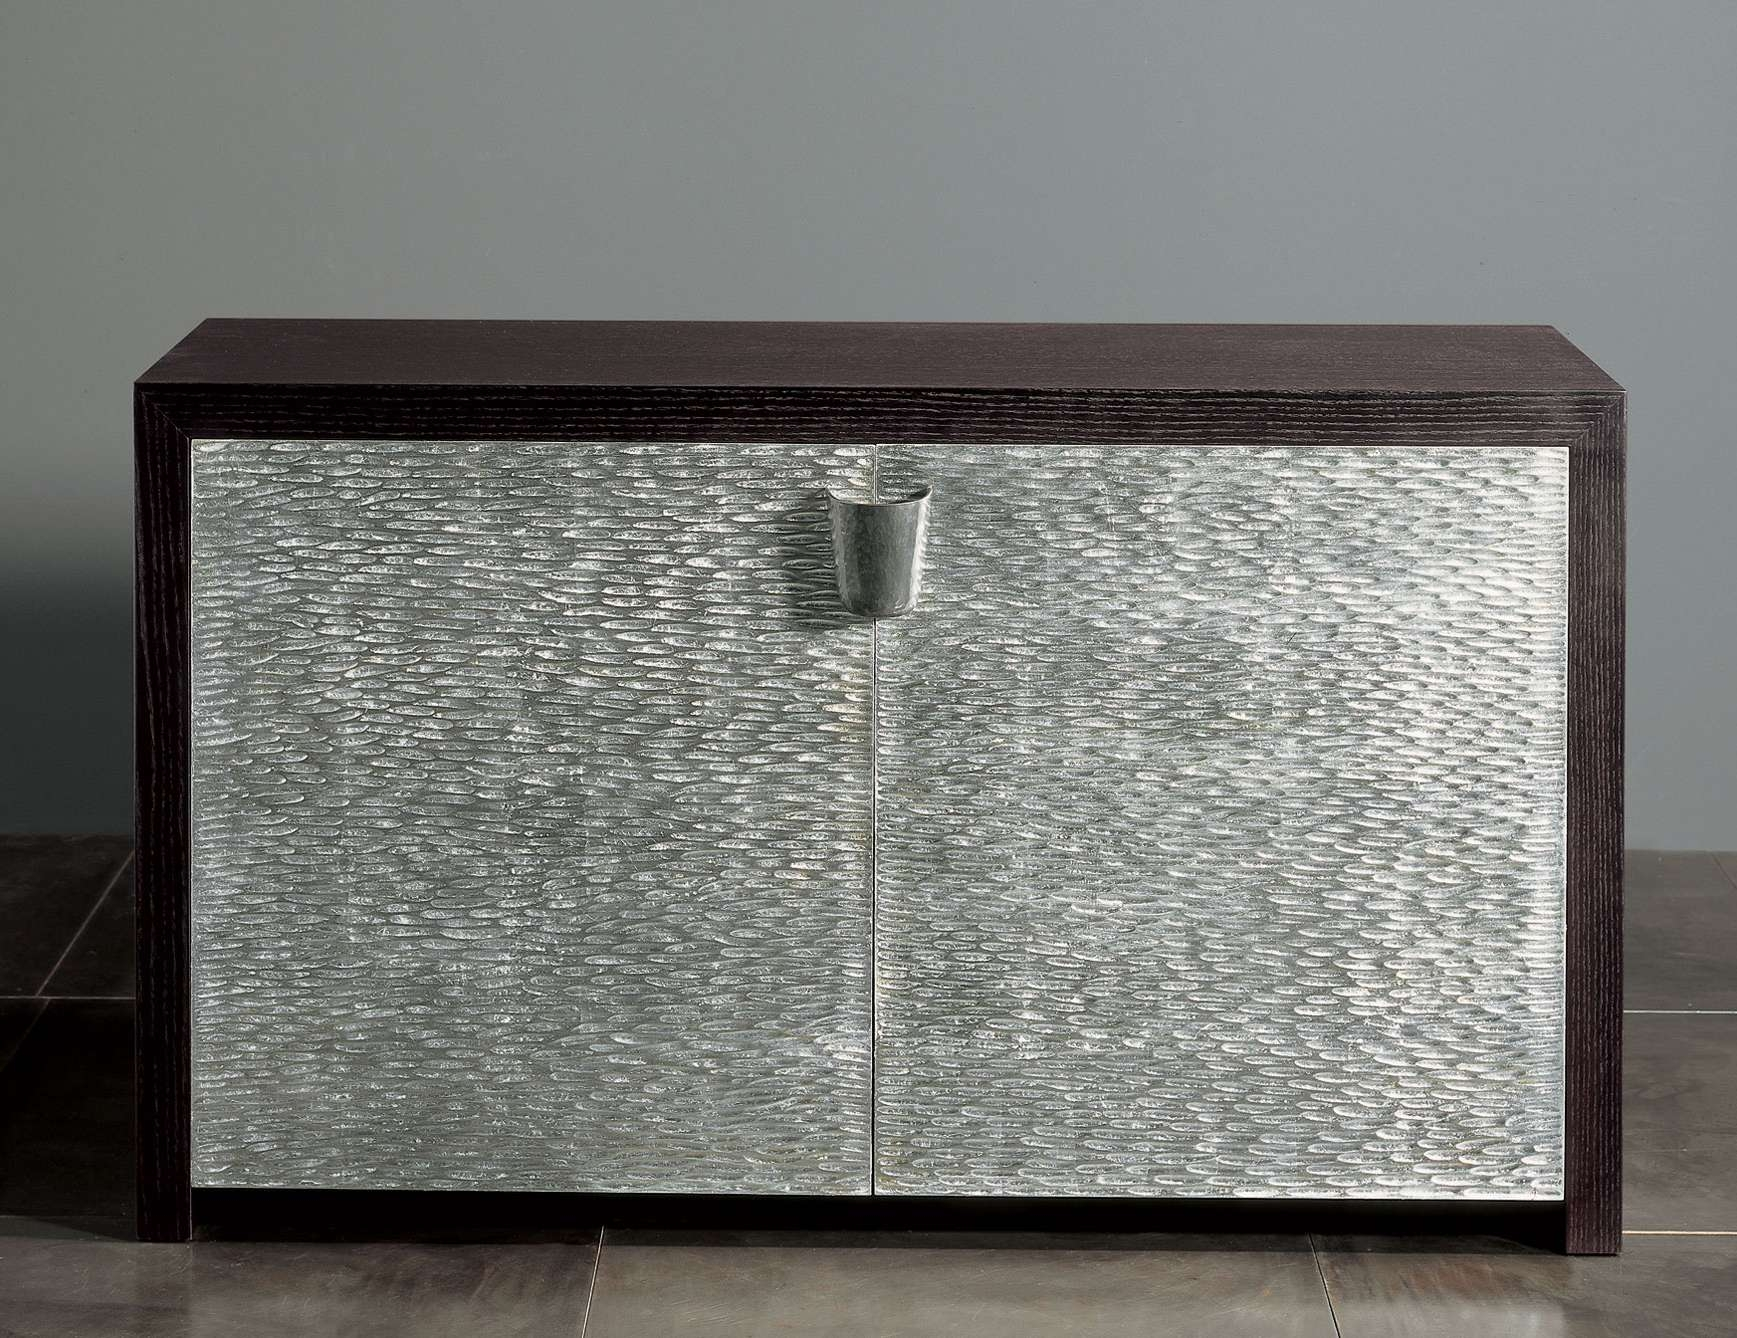 Nella Vetrina Rugiano Shiroma 6027 Wenge Silver Sideboard Intended For Black And Silver Sideboards (View 14 of 20)